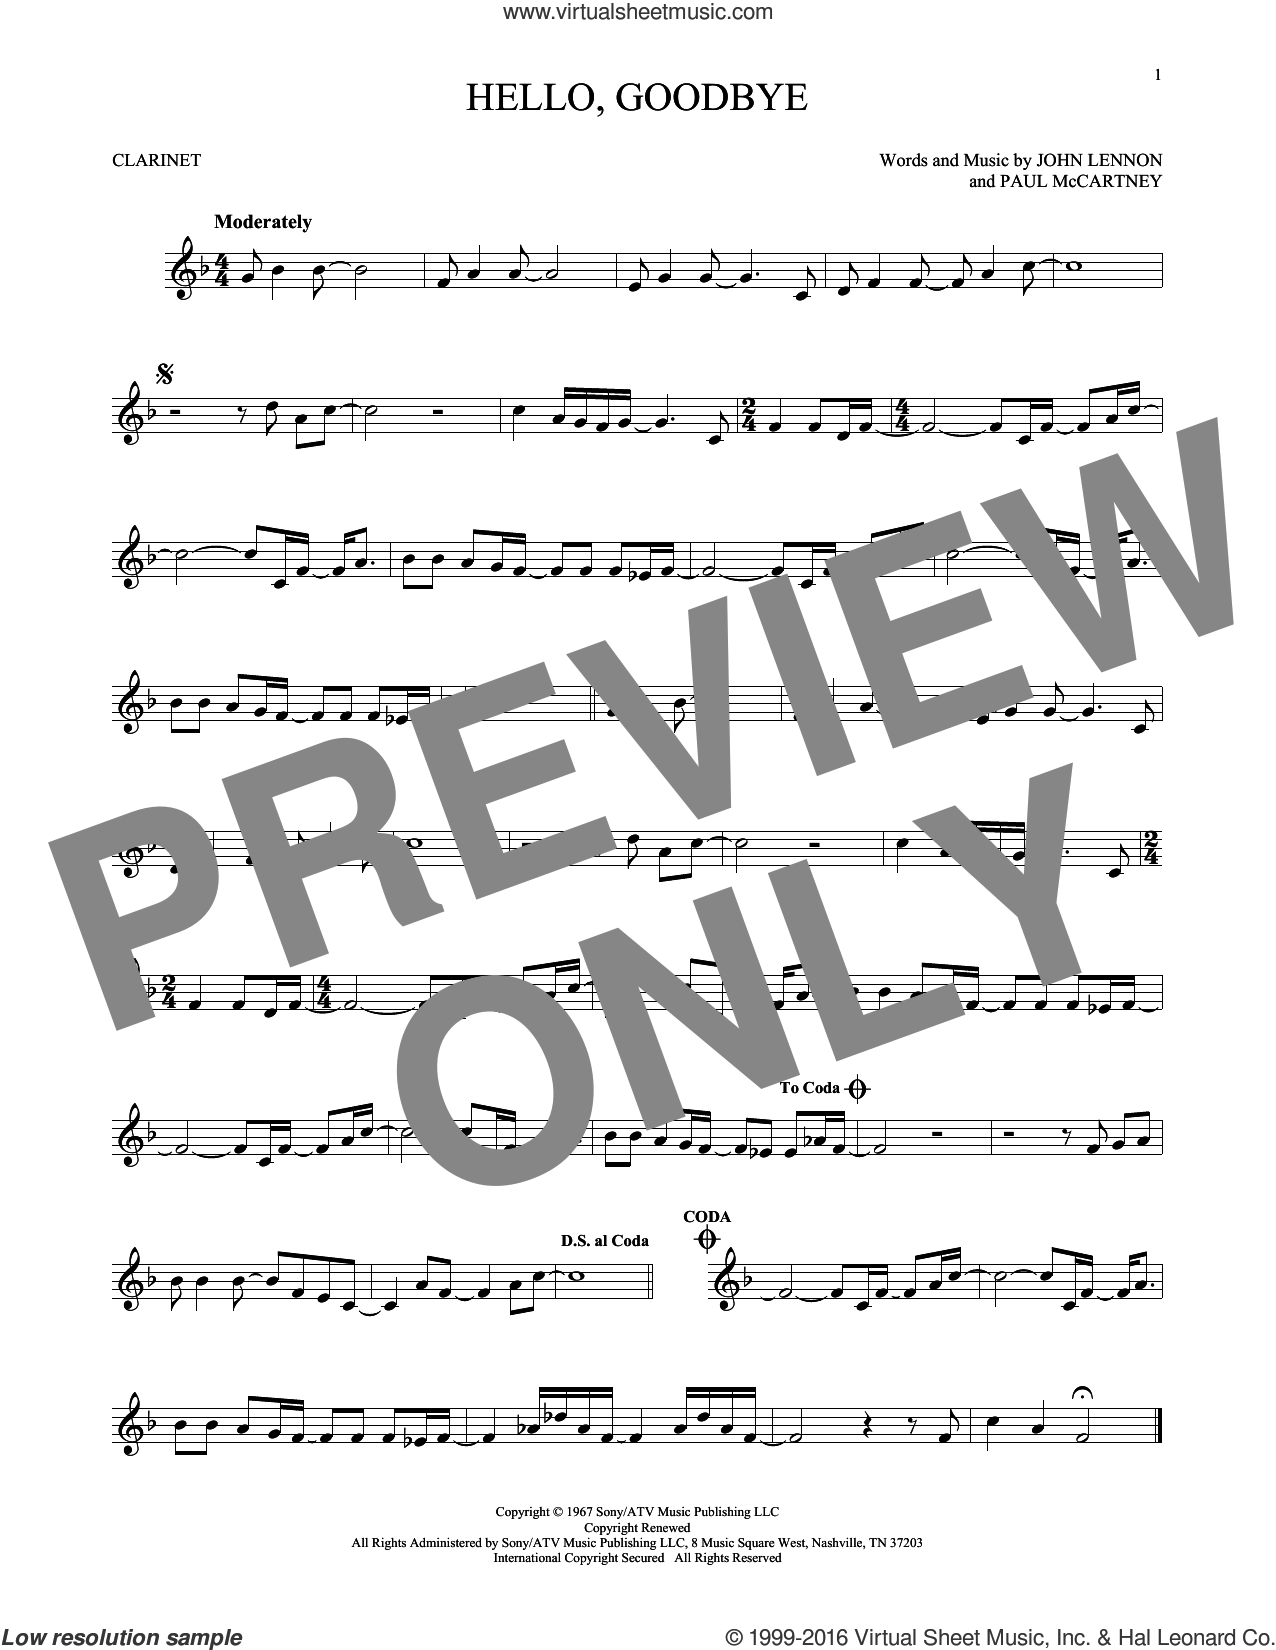 Hello, Goodbye sheet music for clarinet solo by Paul McCartney